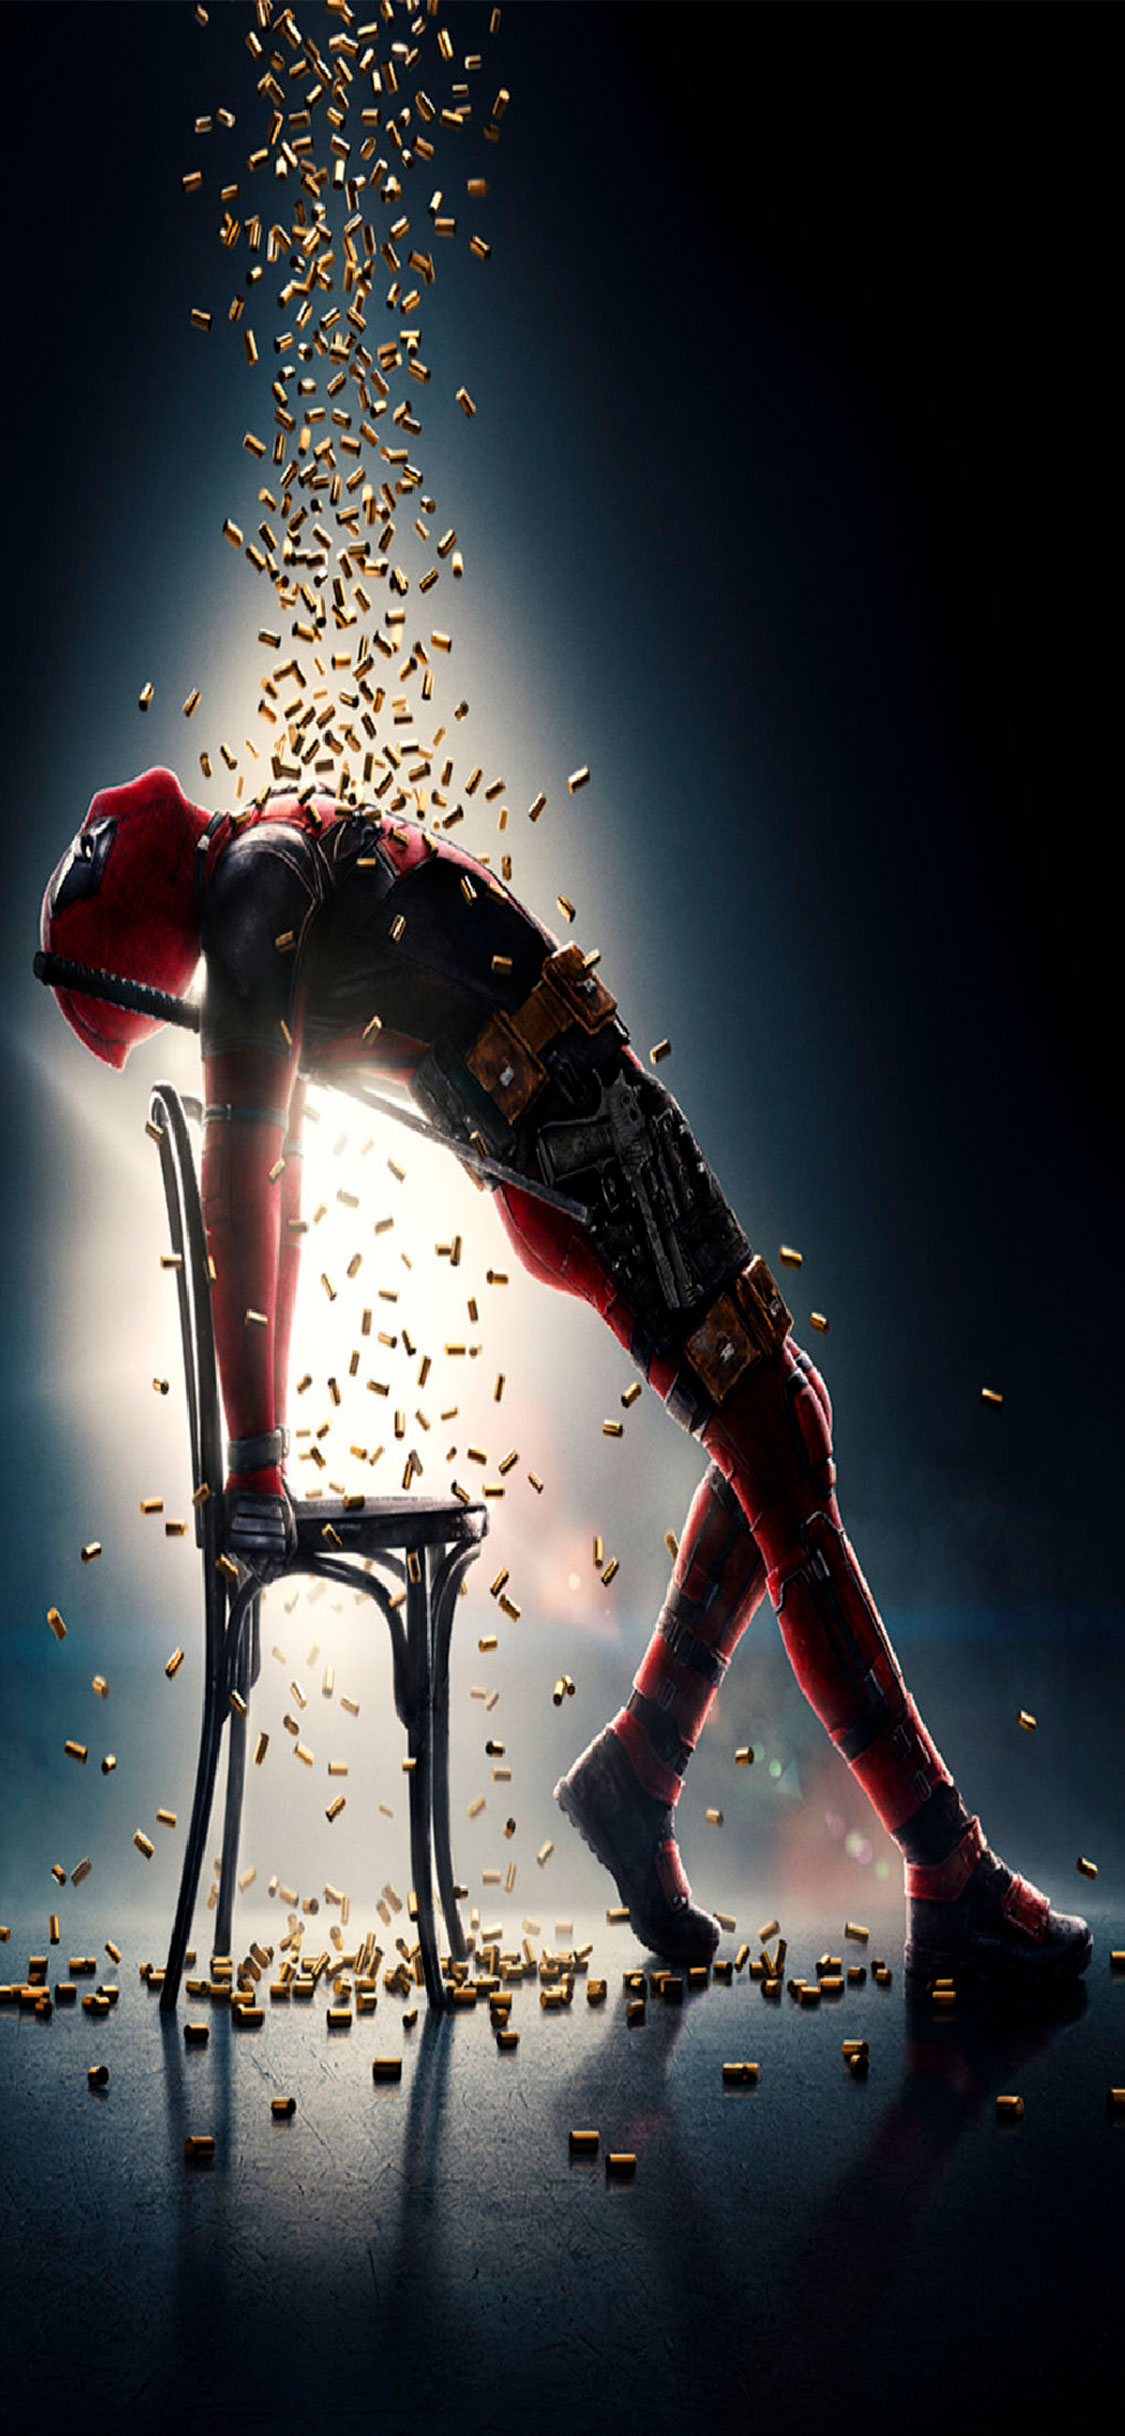 iPhone wallpaper deadpool bullets Deadpool